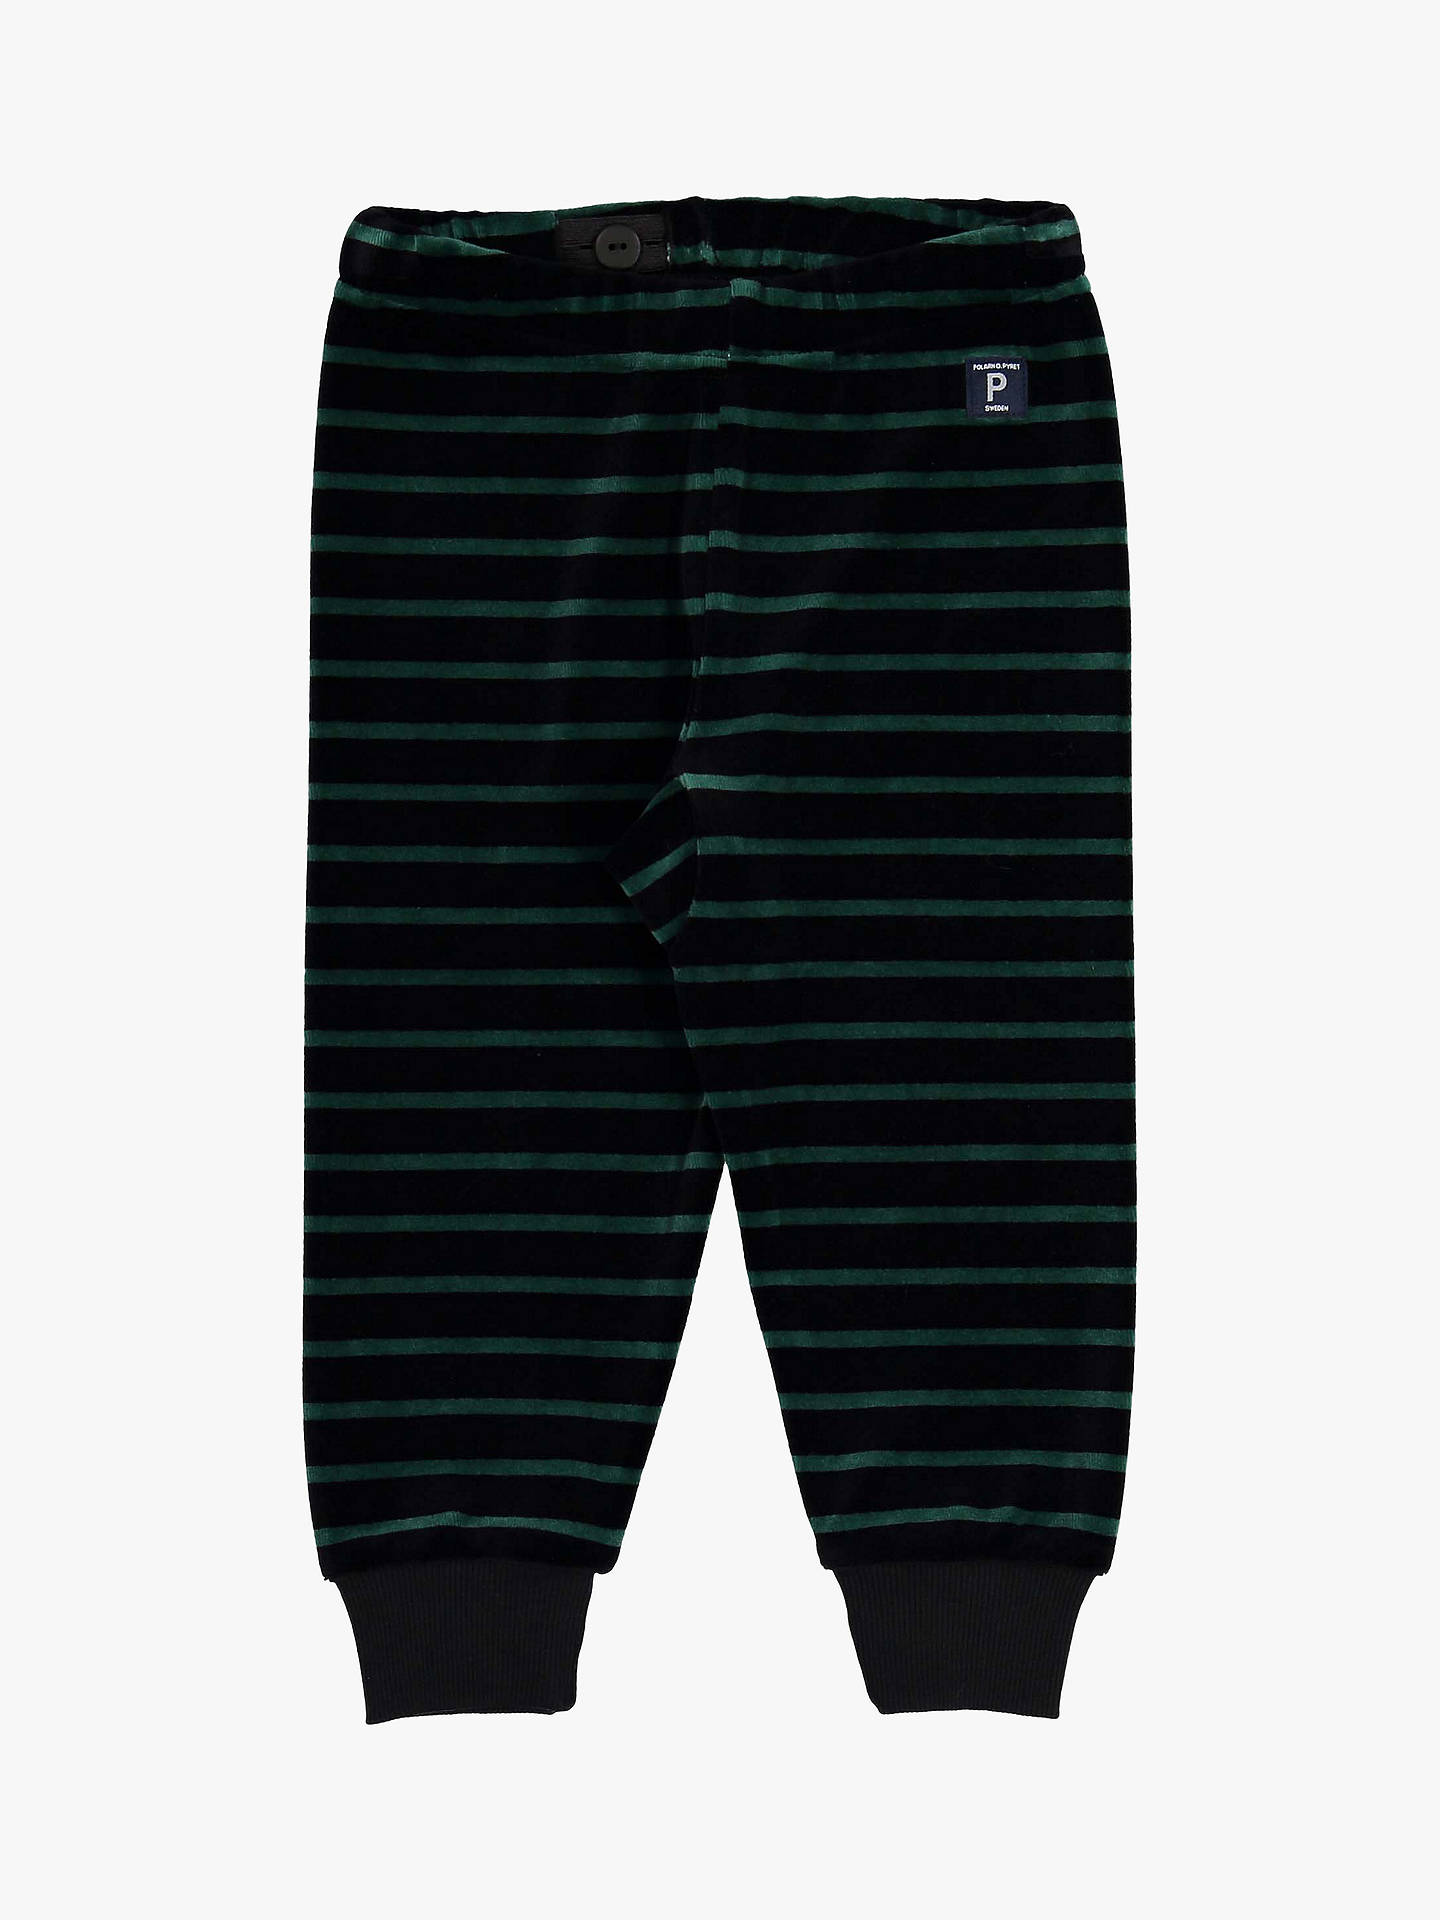 BuyPolarn O. Pyret Baby Stripe Velour Trousers, Black, 6-9 months Online at johnlewis.com